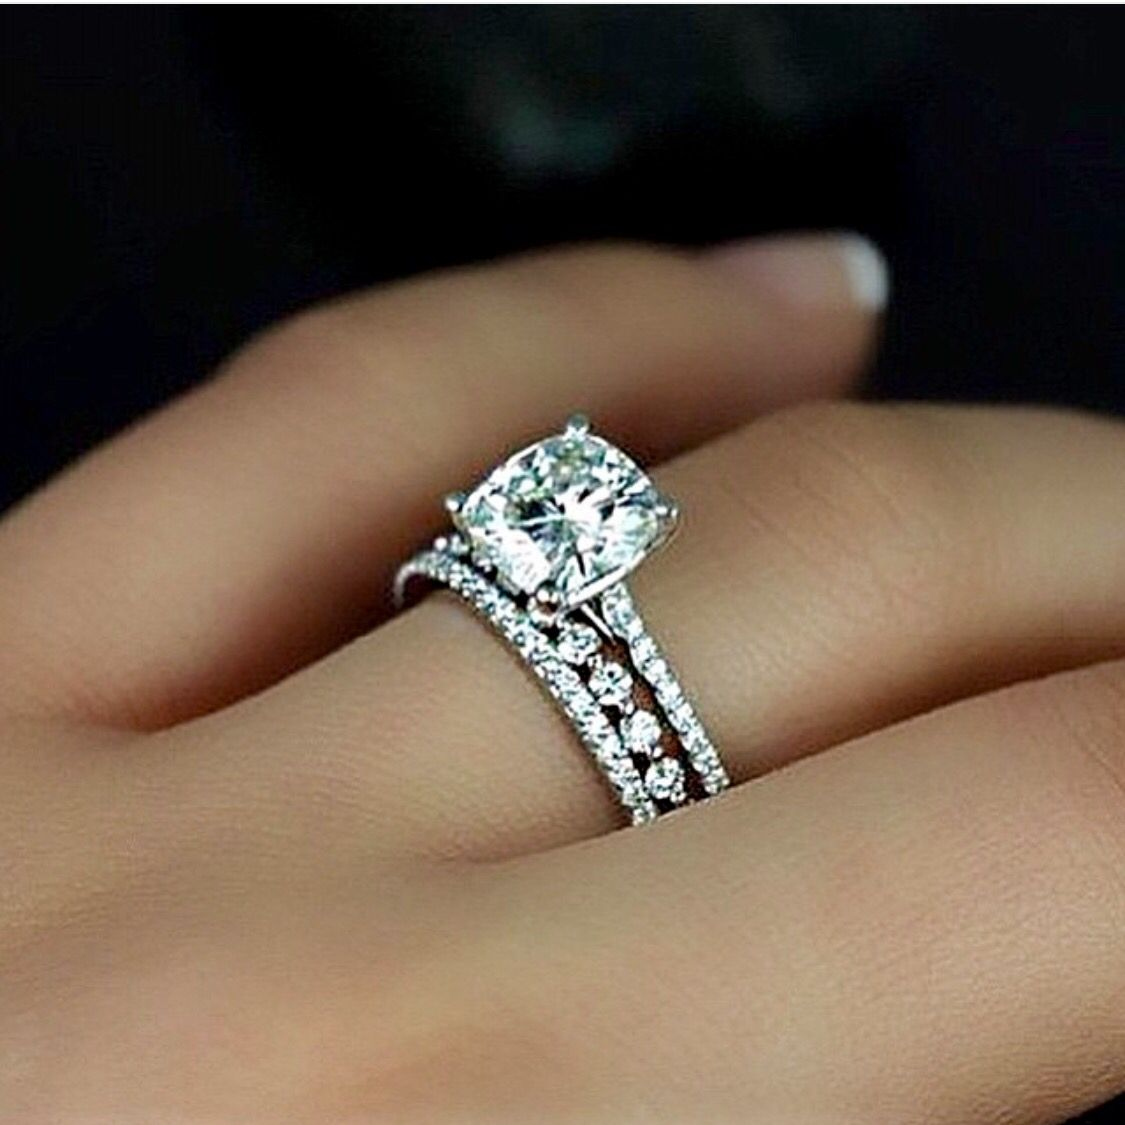 Rudithjeweler wedding ideas pinterest ring wedding and engagement